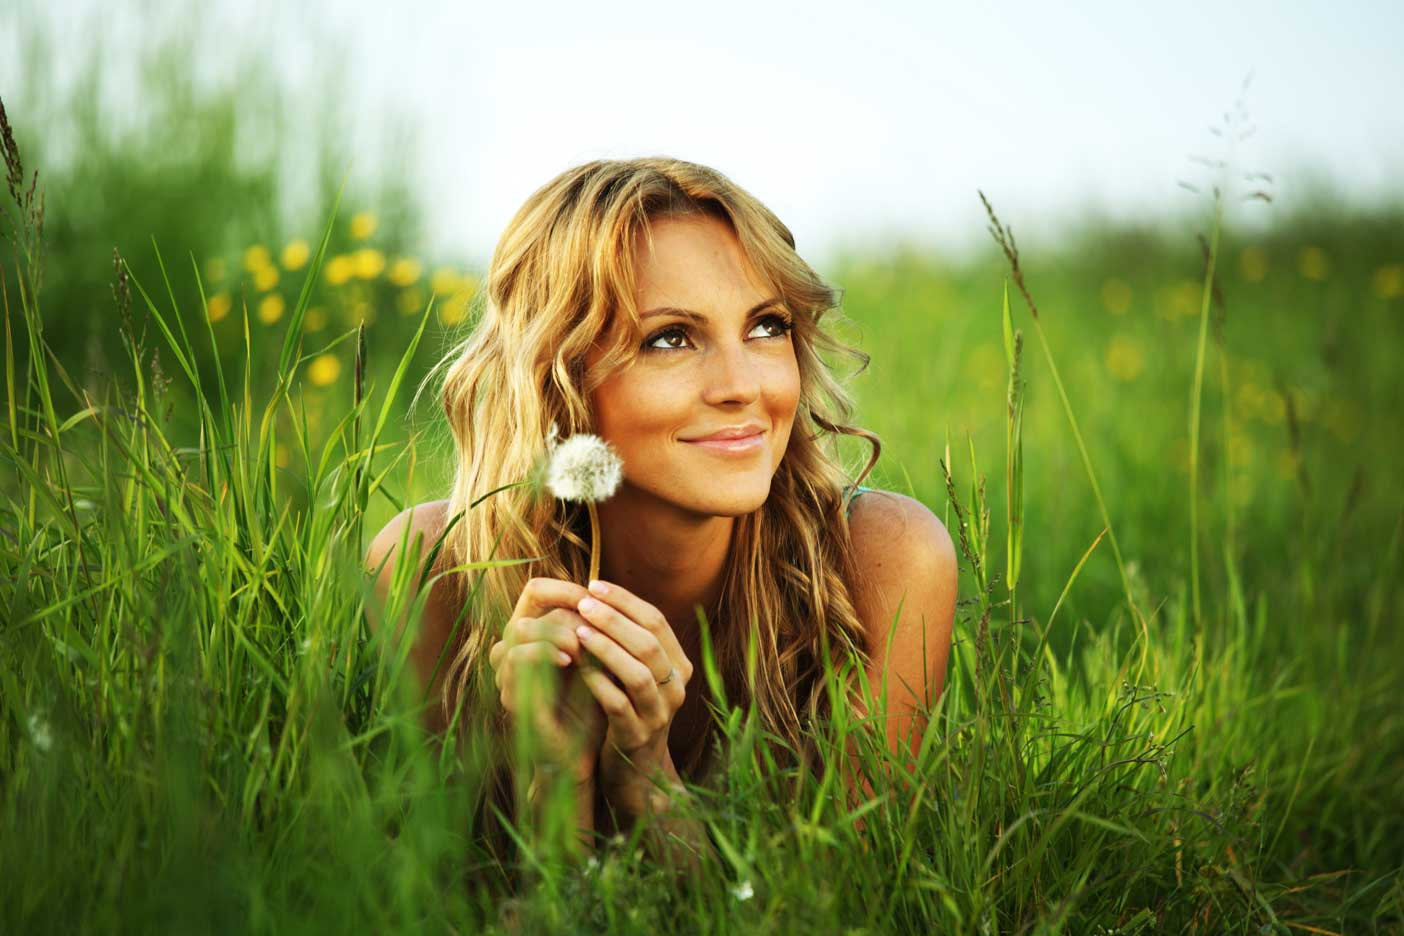 Smiling Women Laying in Grass Holding Dandelion Seed